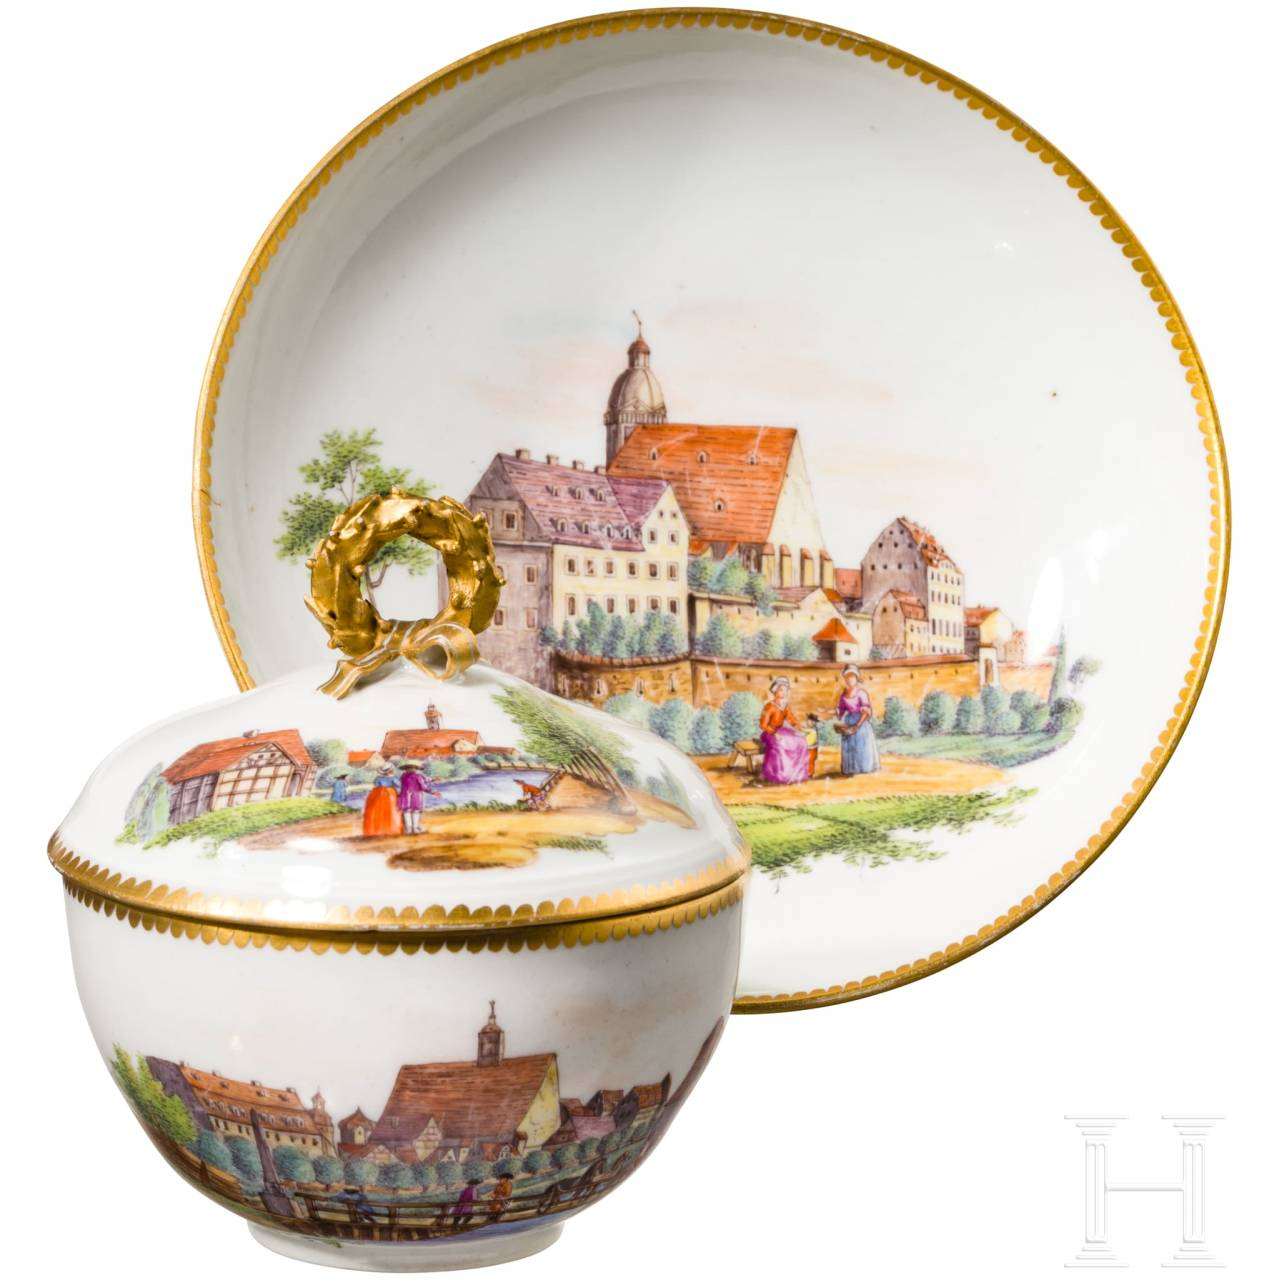 Porcelain cup with lid and saucer, finely painted cityscapes with people, Meissen, probably around 1800